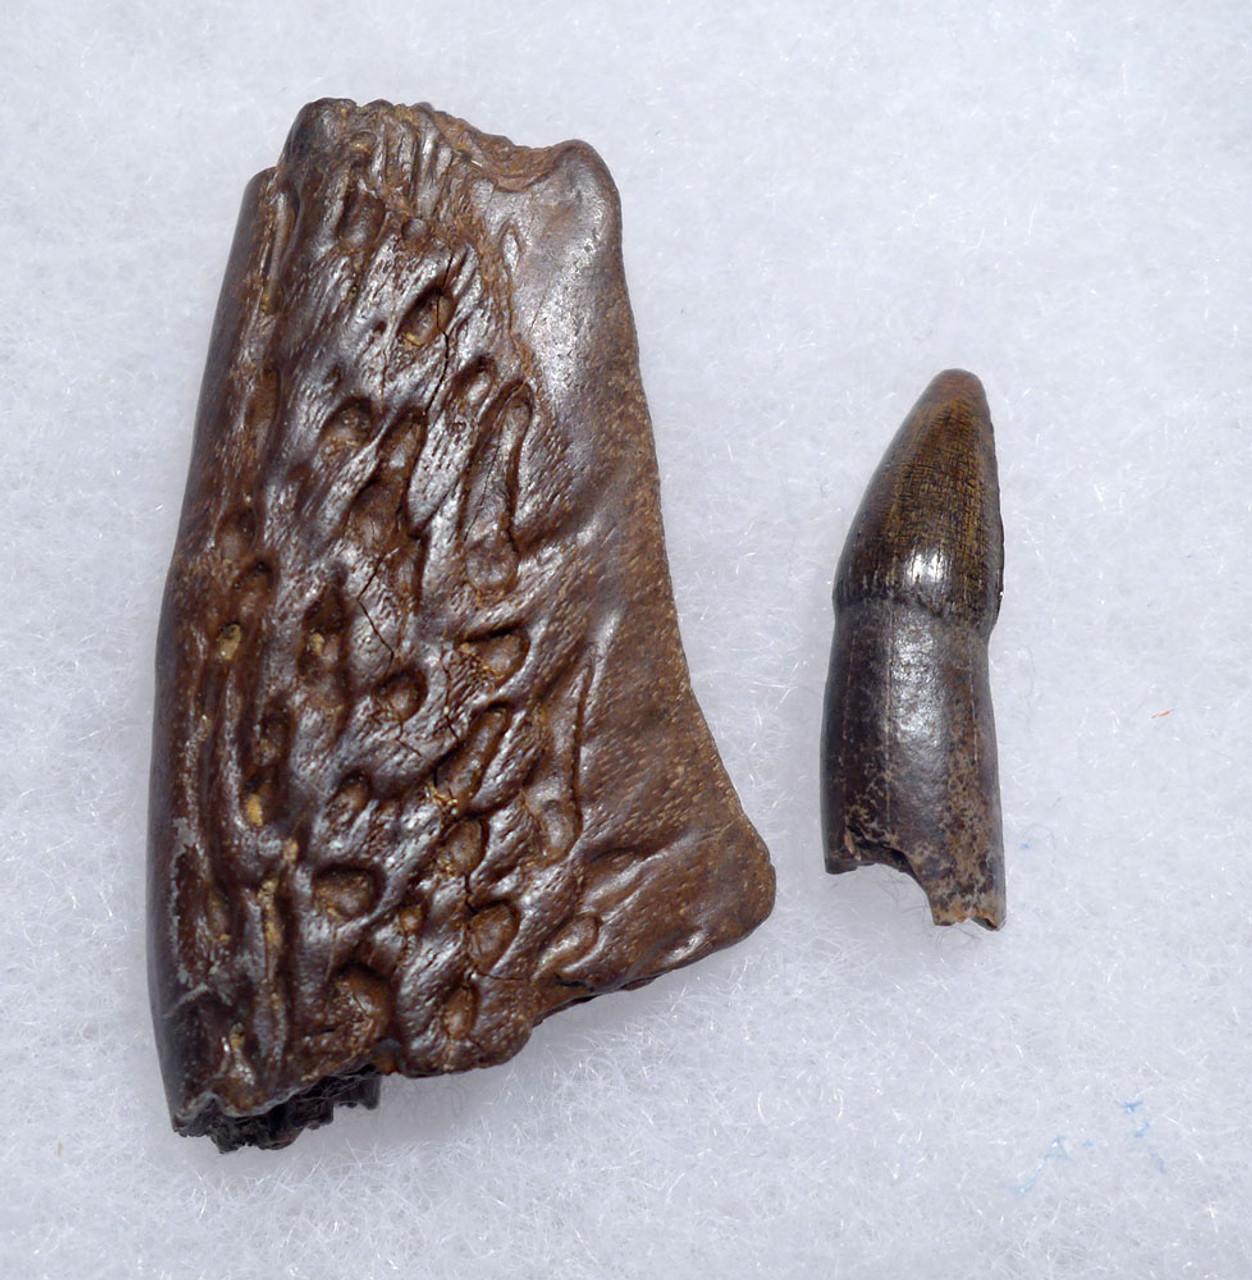 HELL CREEK FORMATION LEIDYOSUCHUS CROCODILE FOSSIL TOOTH WITH JAW FRAGMENT  *CROC081